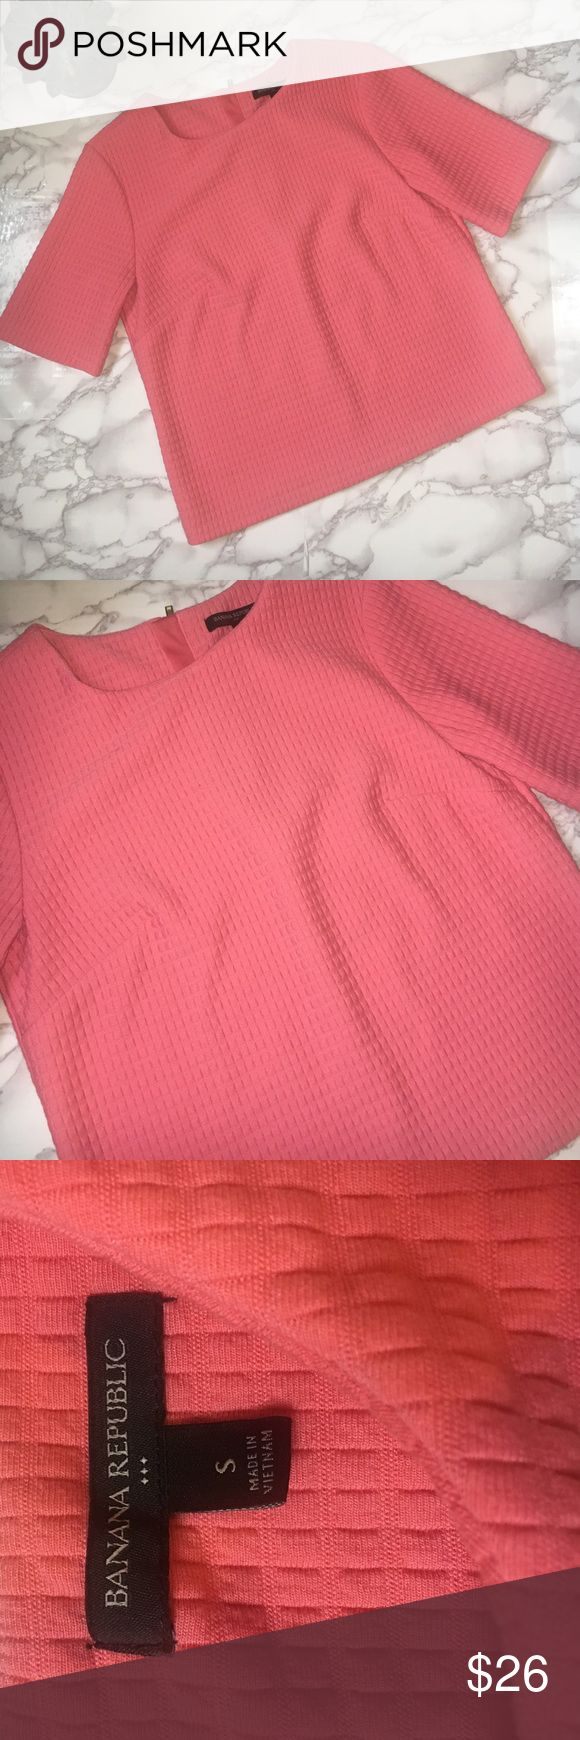 """Banana Republic Short Sleeve Top Banana Republic Factory Short Sleeve Top in coral. Raised knit pattern. Short sleeve. Zipper on the back. Length is about 21"""". Armpit to armpit is about 18"""". EUC. Banana Republic Tops"""